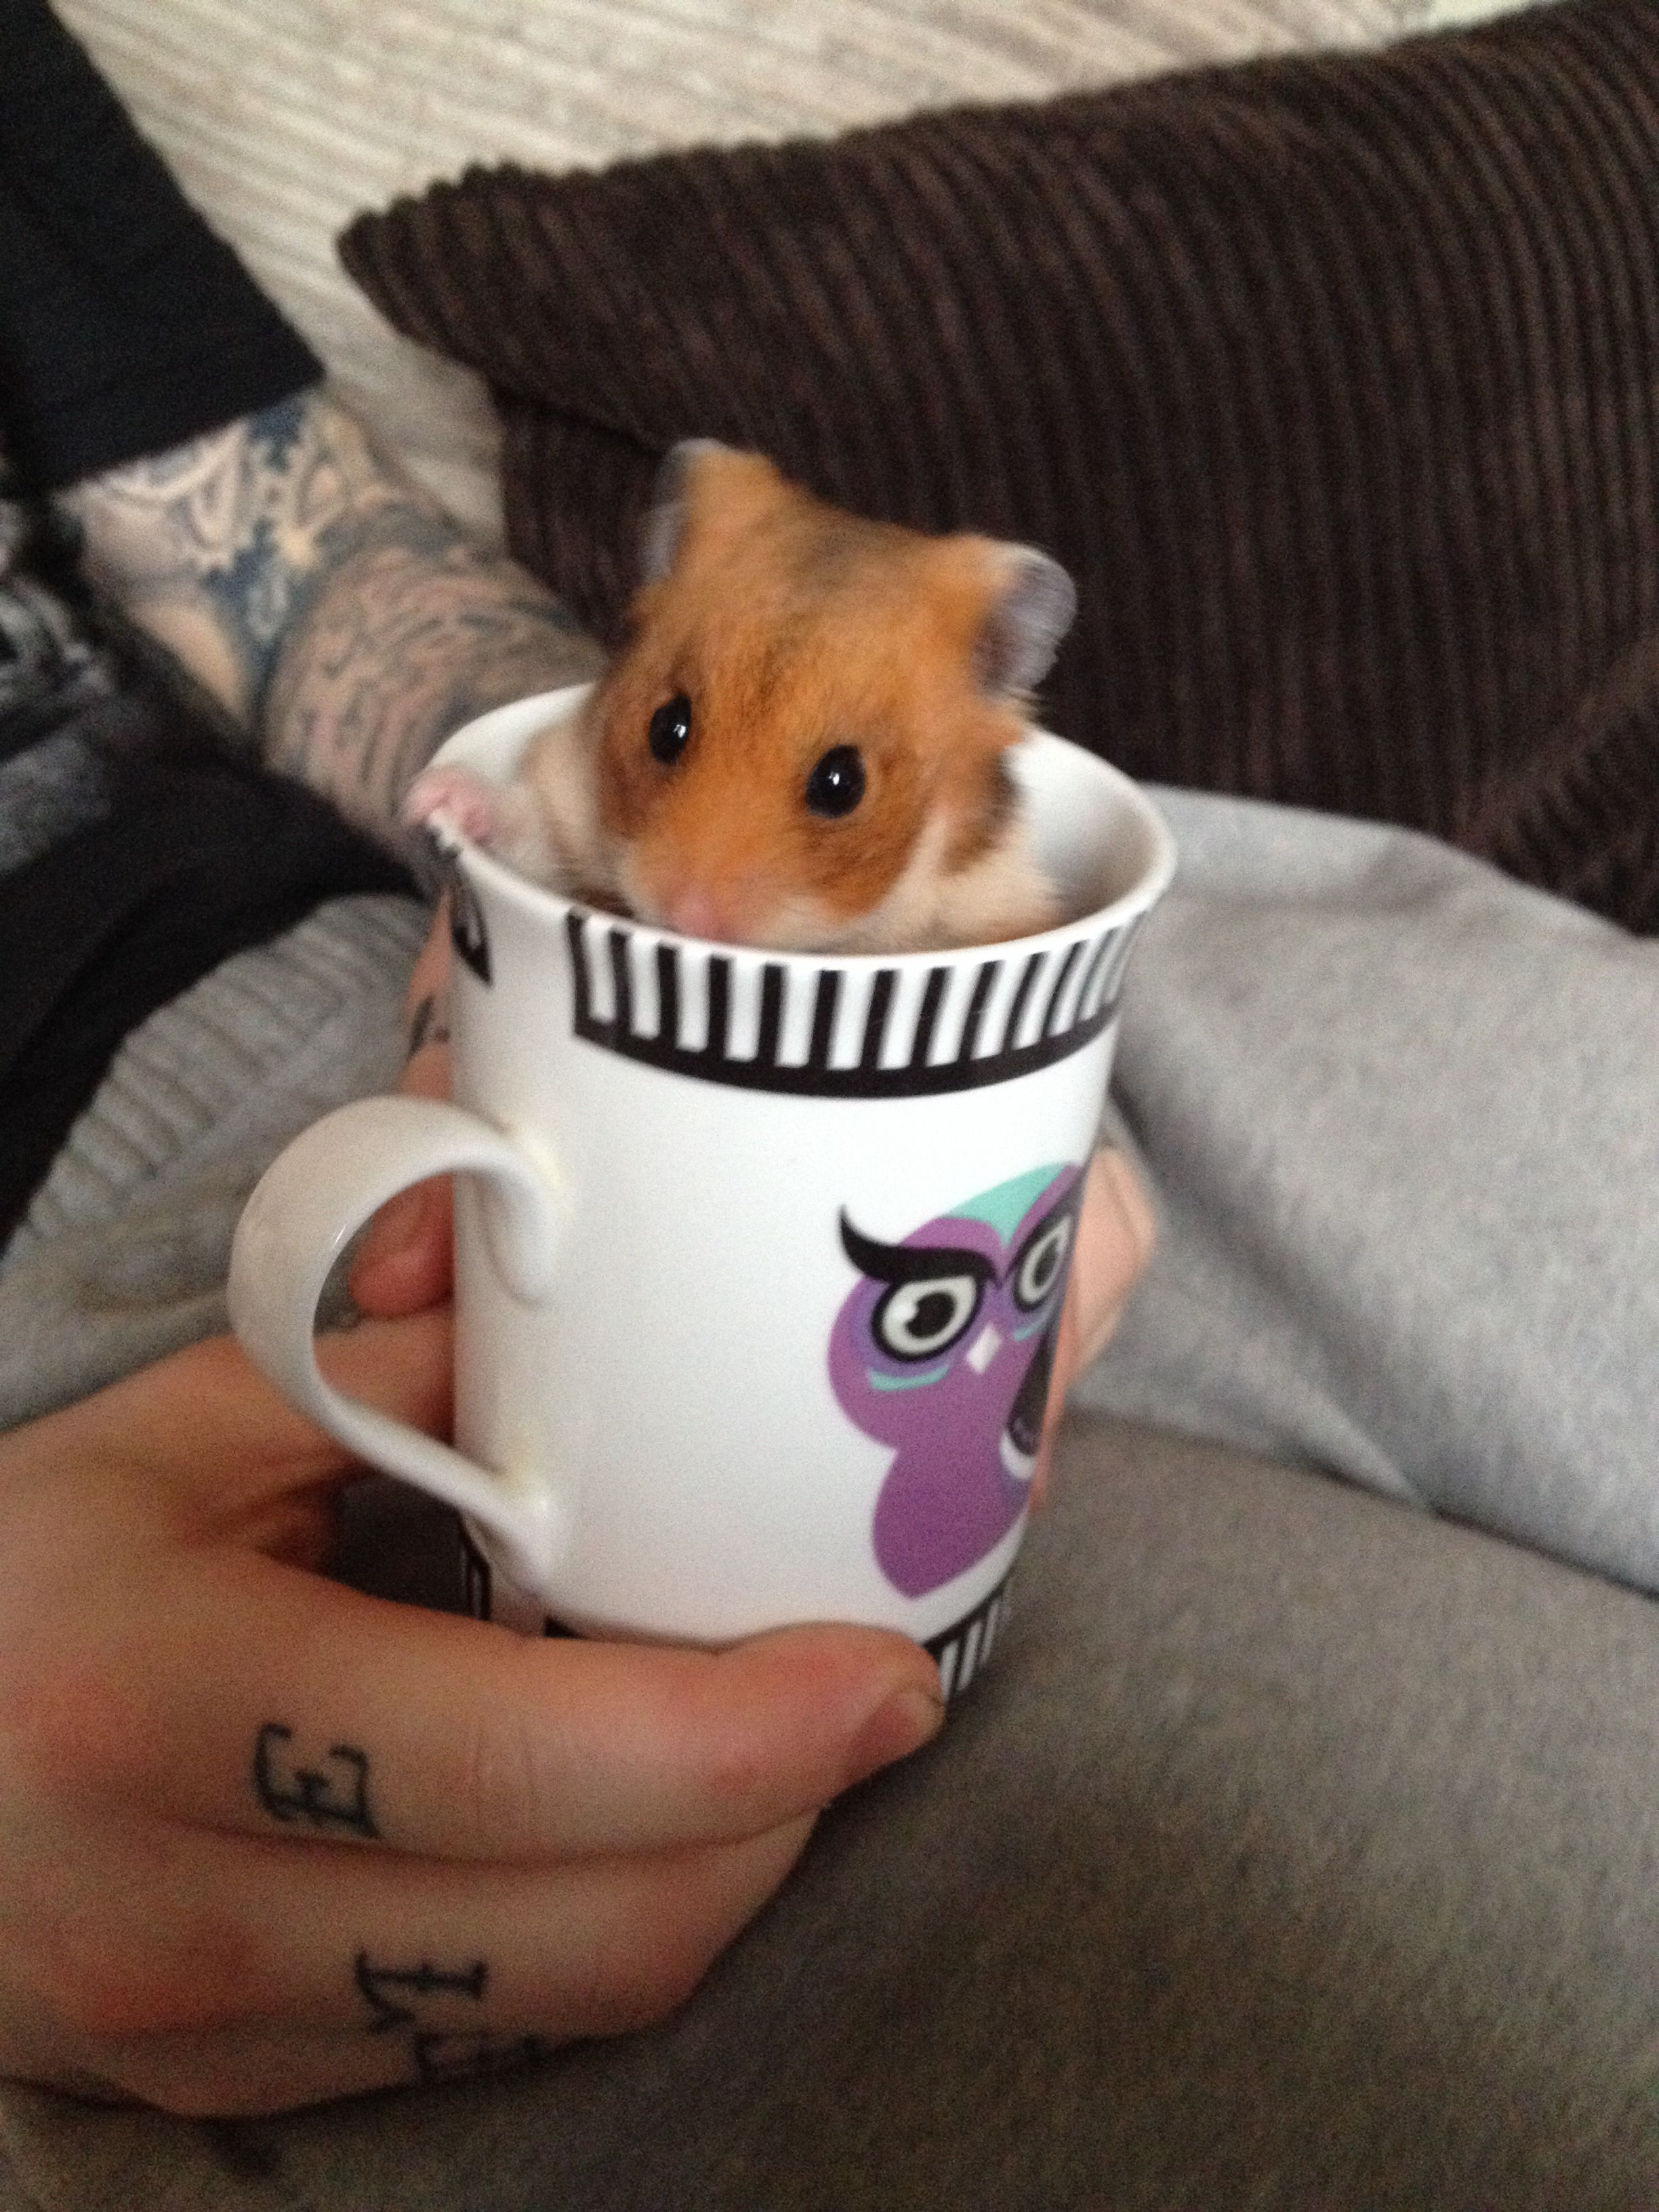 My hamster chuck...in a cup!! Too cute!